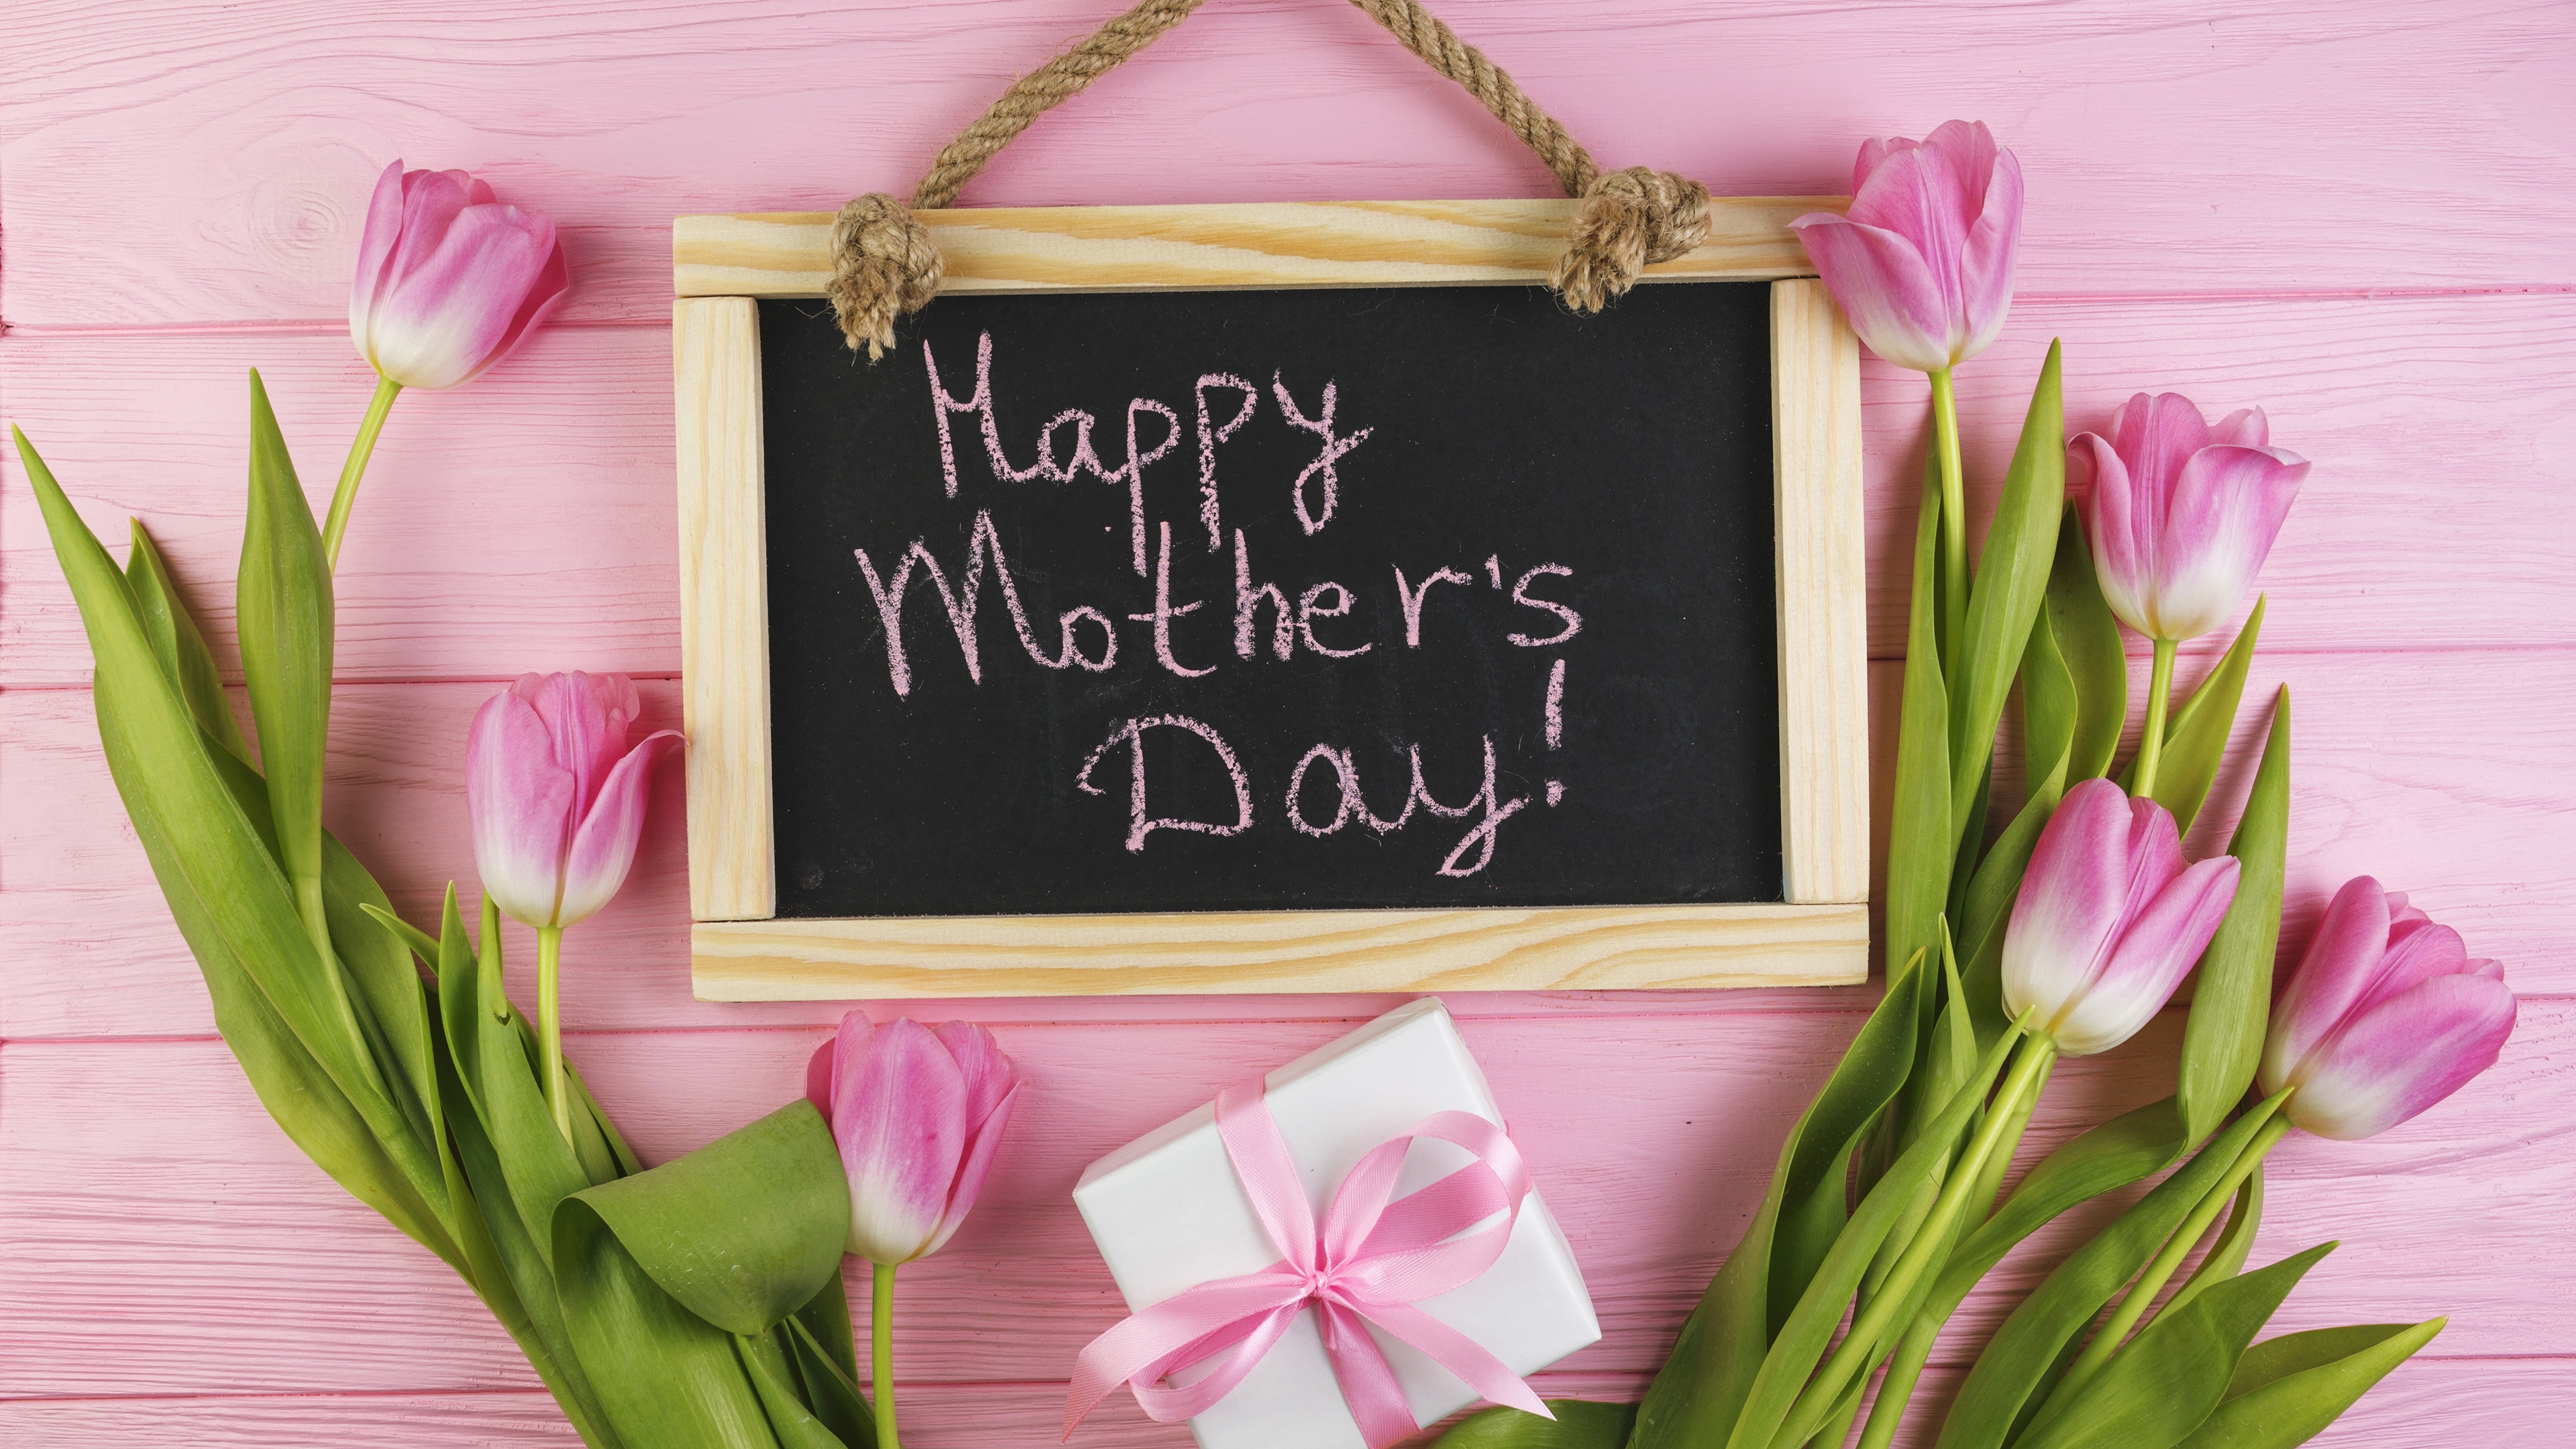 Wallpaper Happy Mother's Day, pink tulips, gift 3840x2160 ...